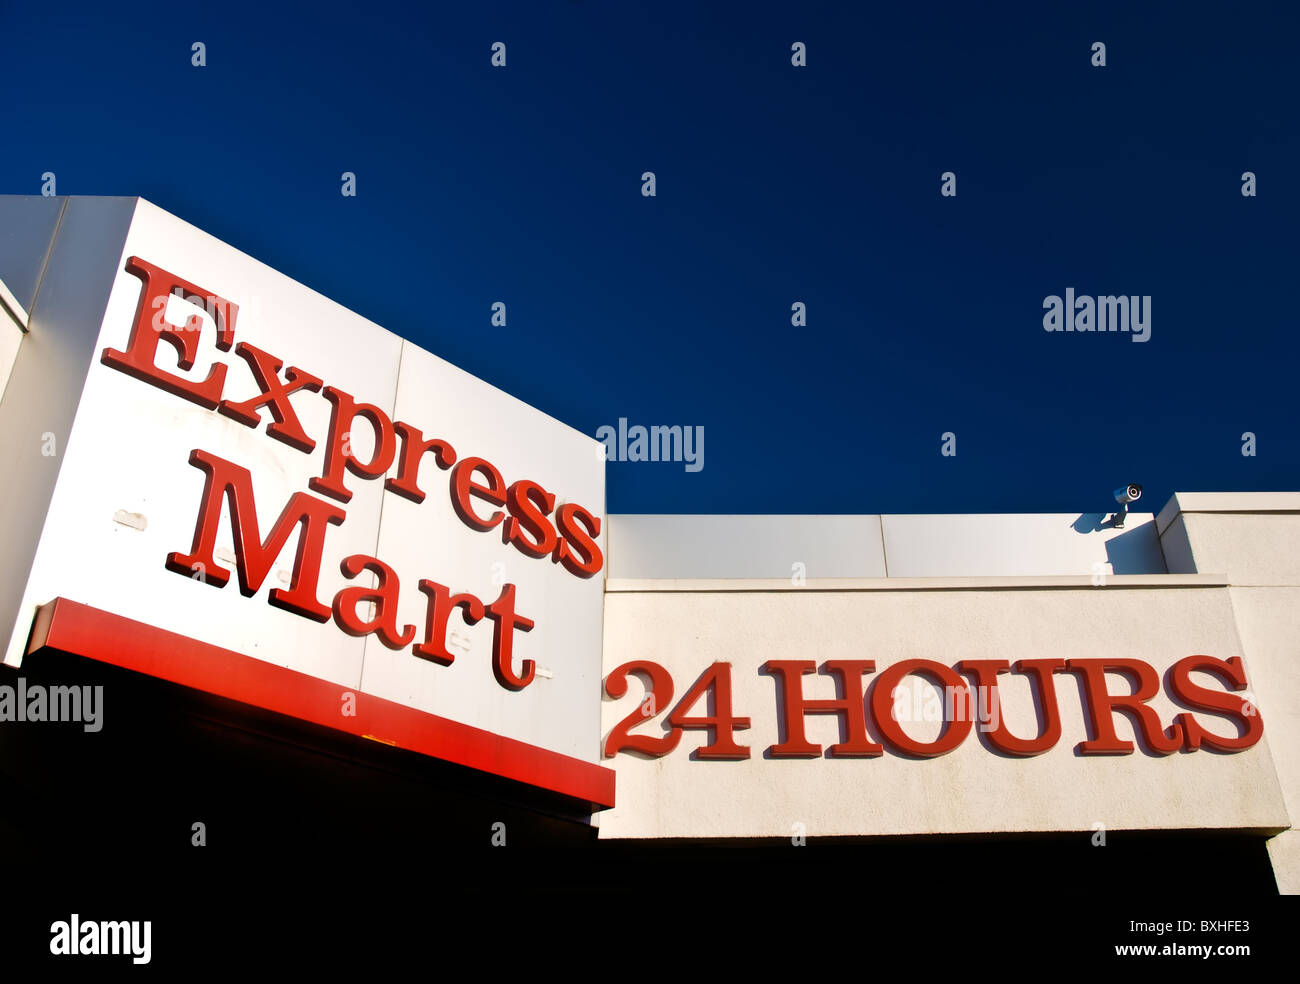 24 Hour Express Mart Sign on Building Stock Photo